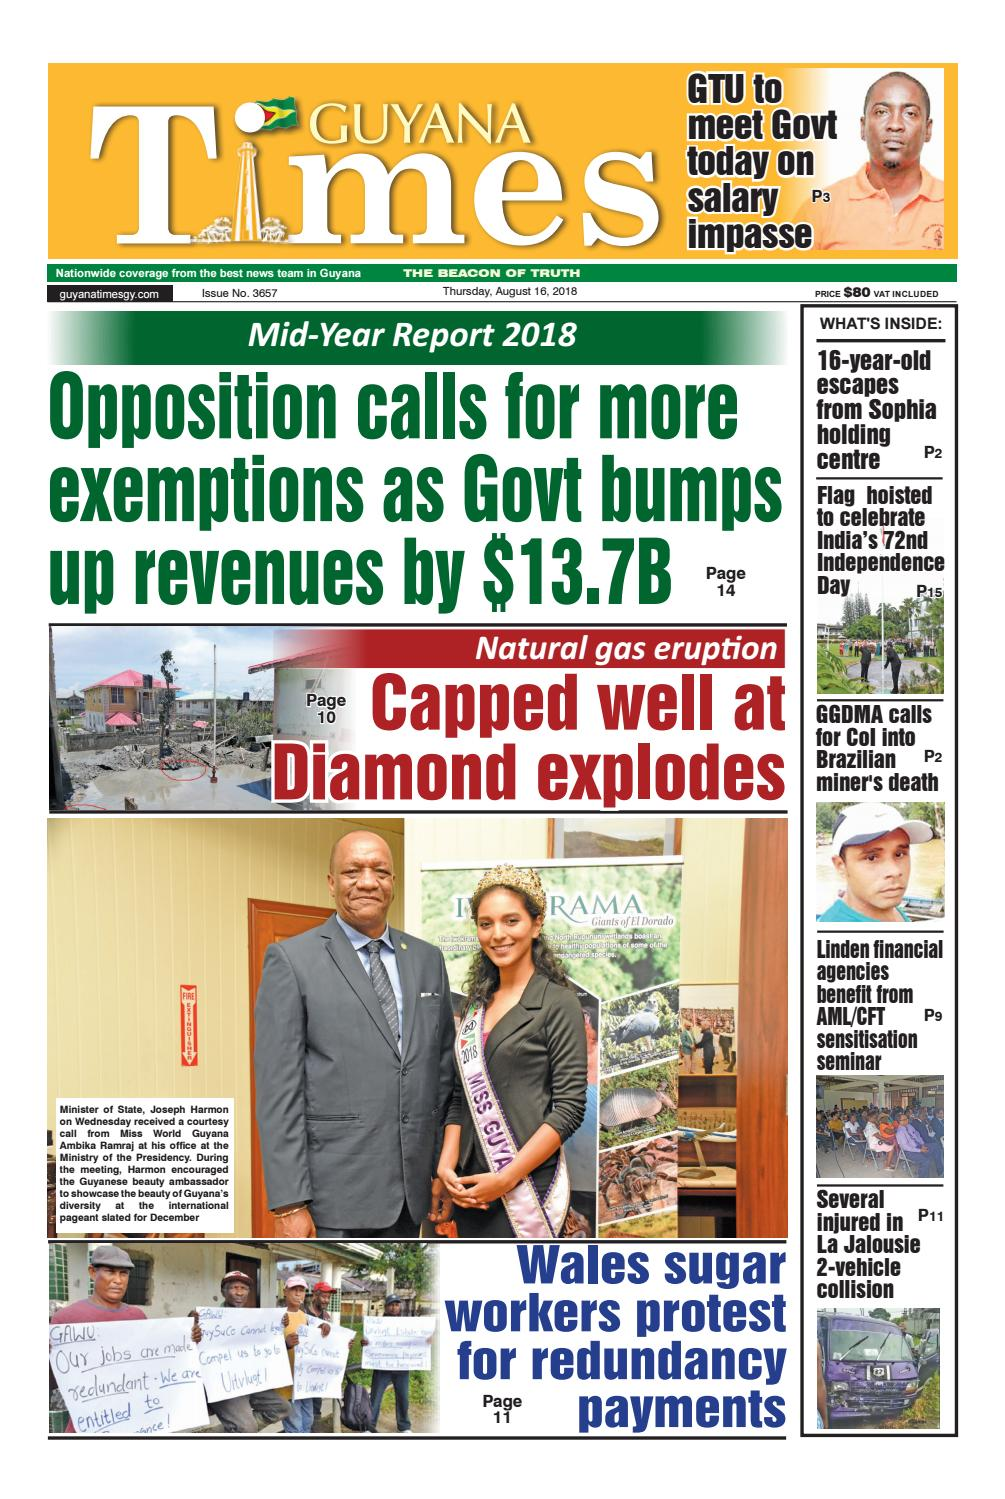 Guyana Times Epaper - Thursday, August 16, 2018